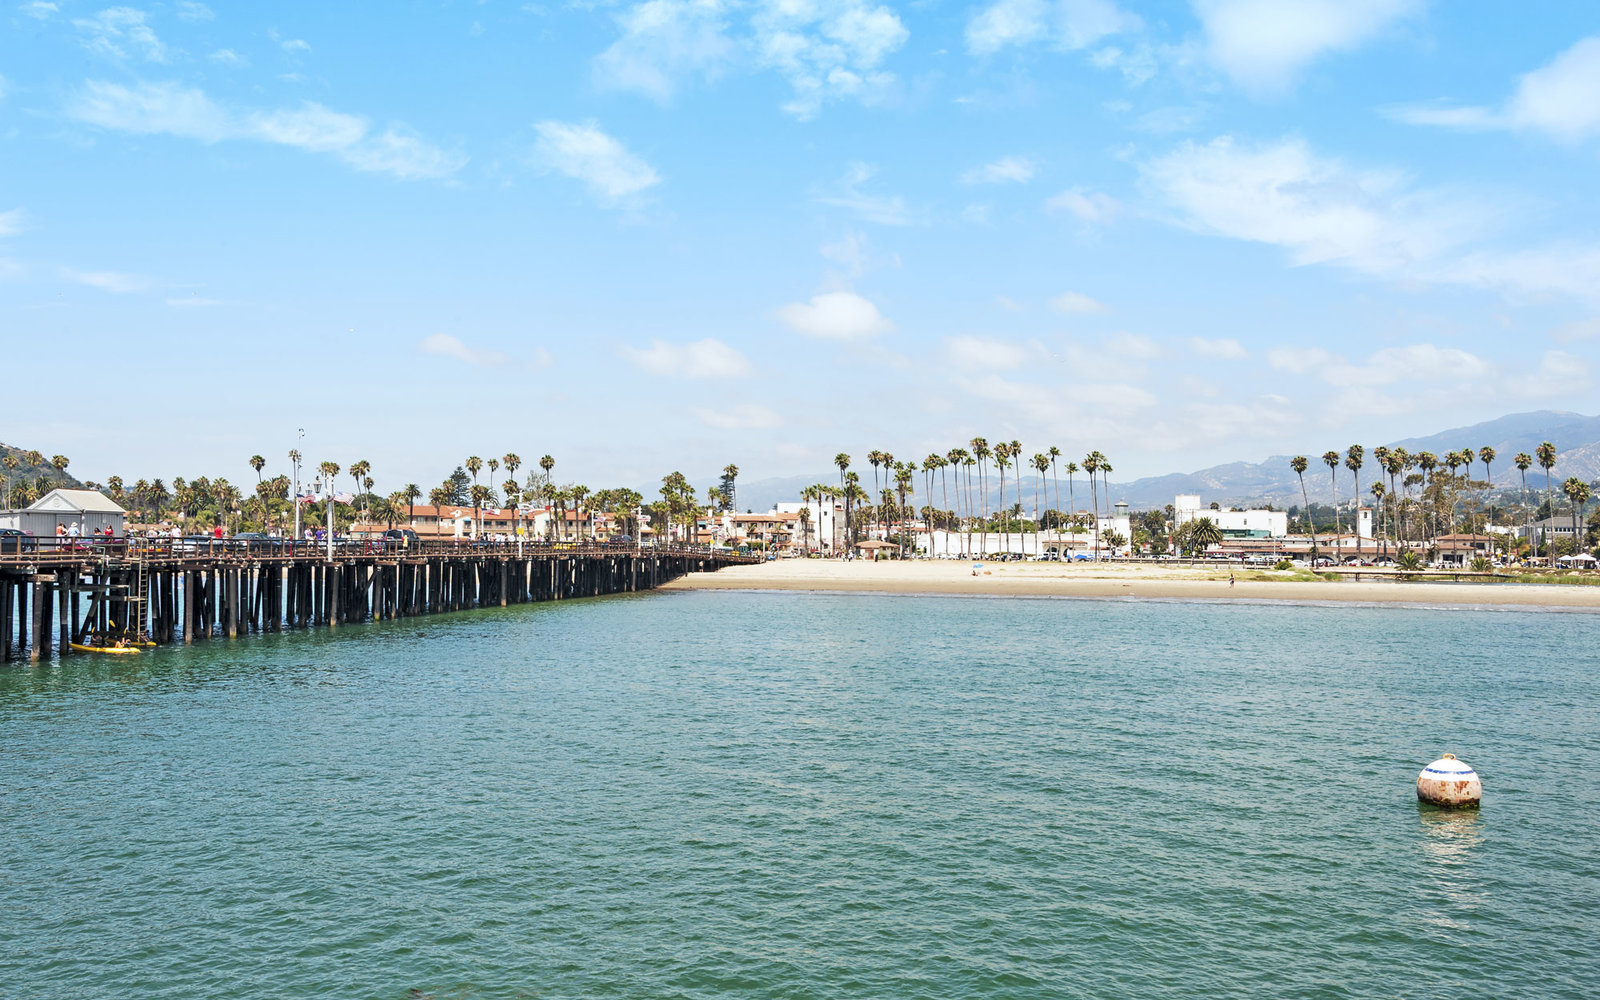 Stearns Wharf, East & West Beach, Santa Barbara